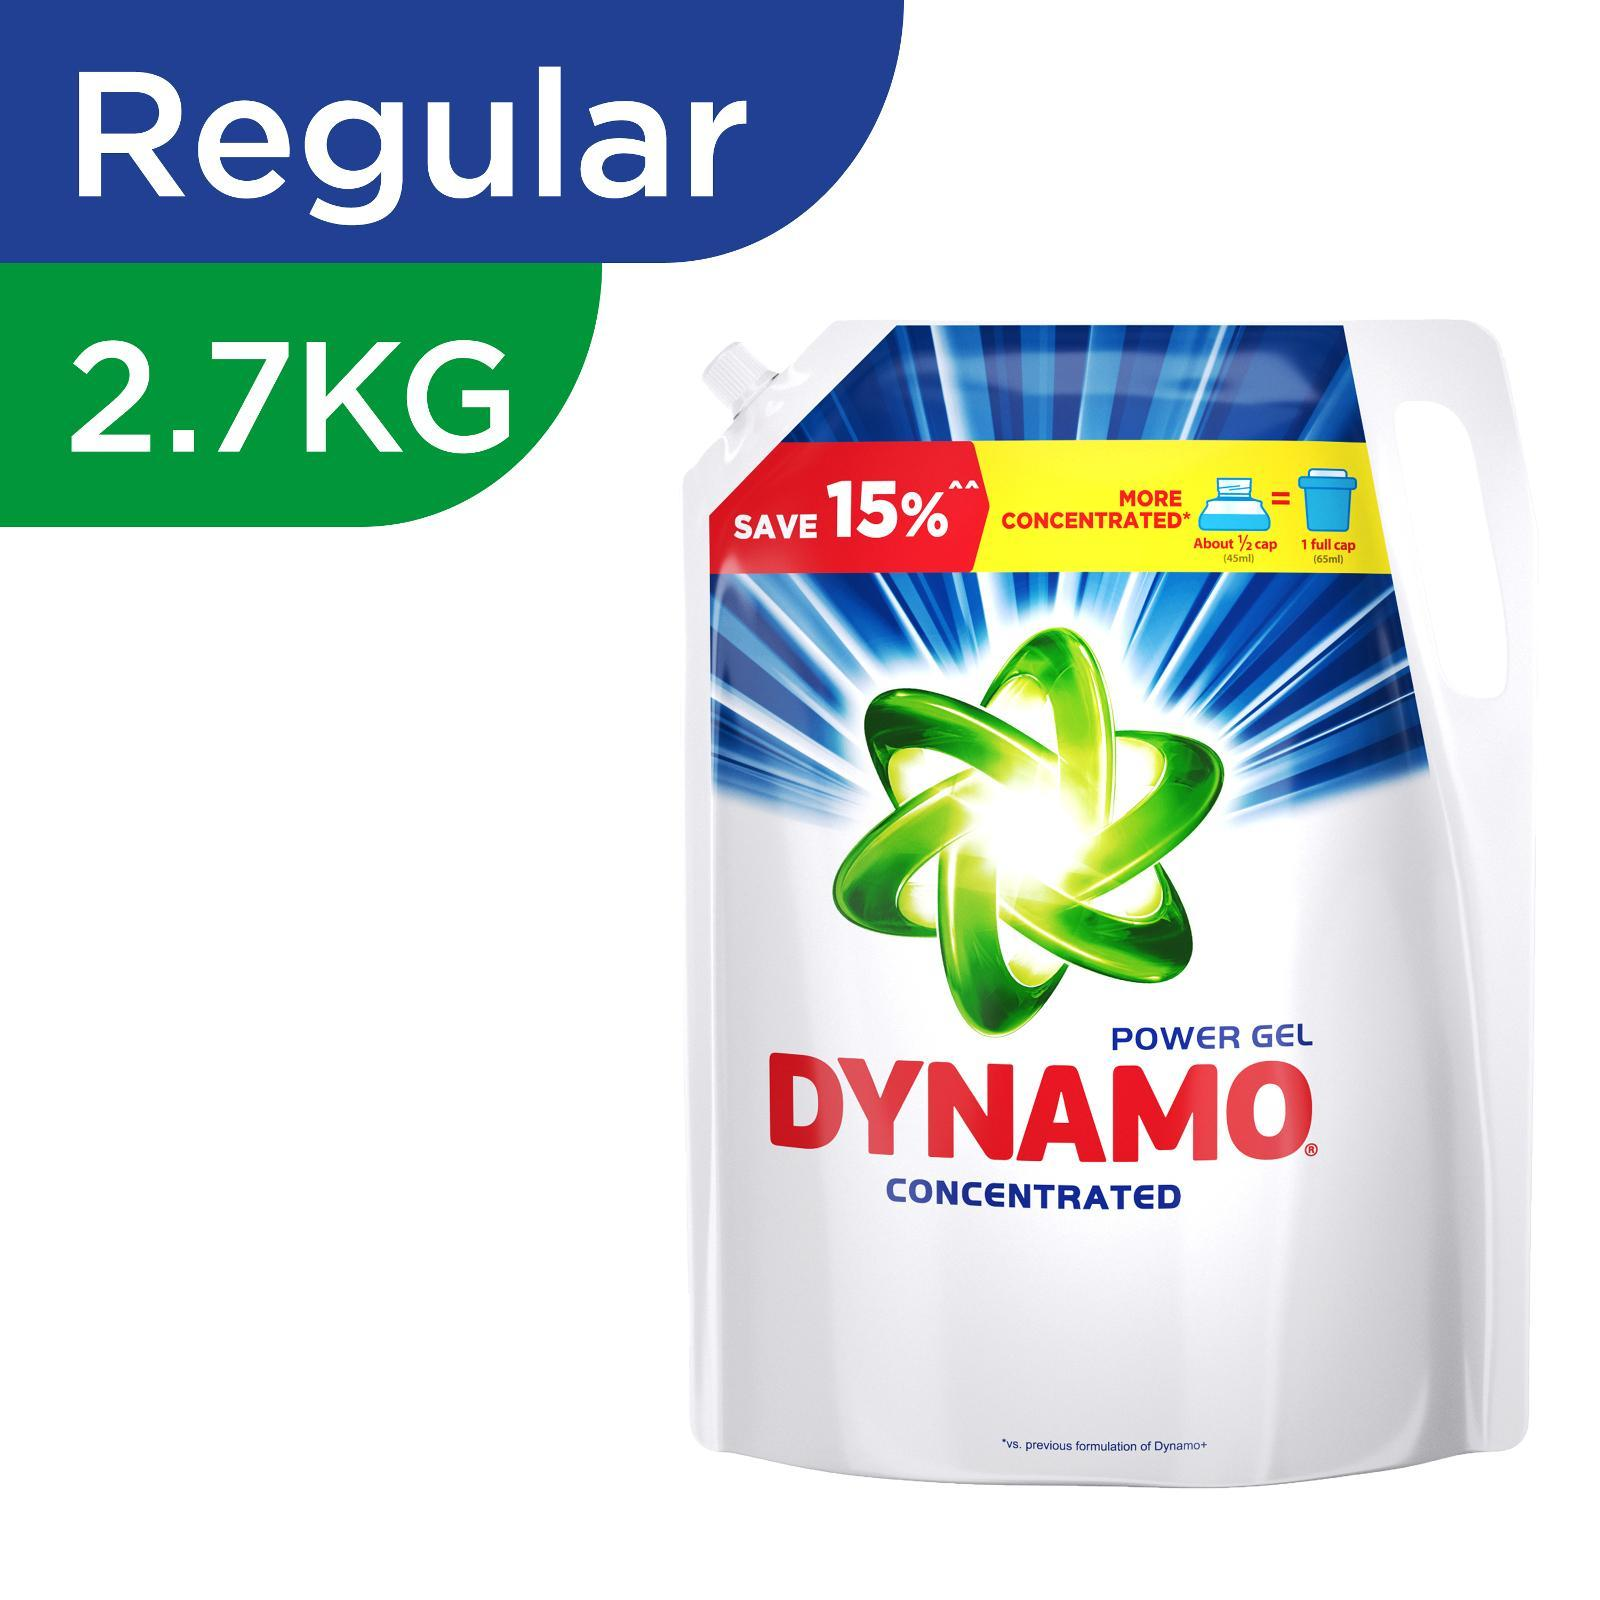 Dynamo Power Gel Regular Laundry Detergent Refill